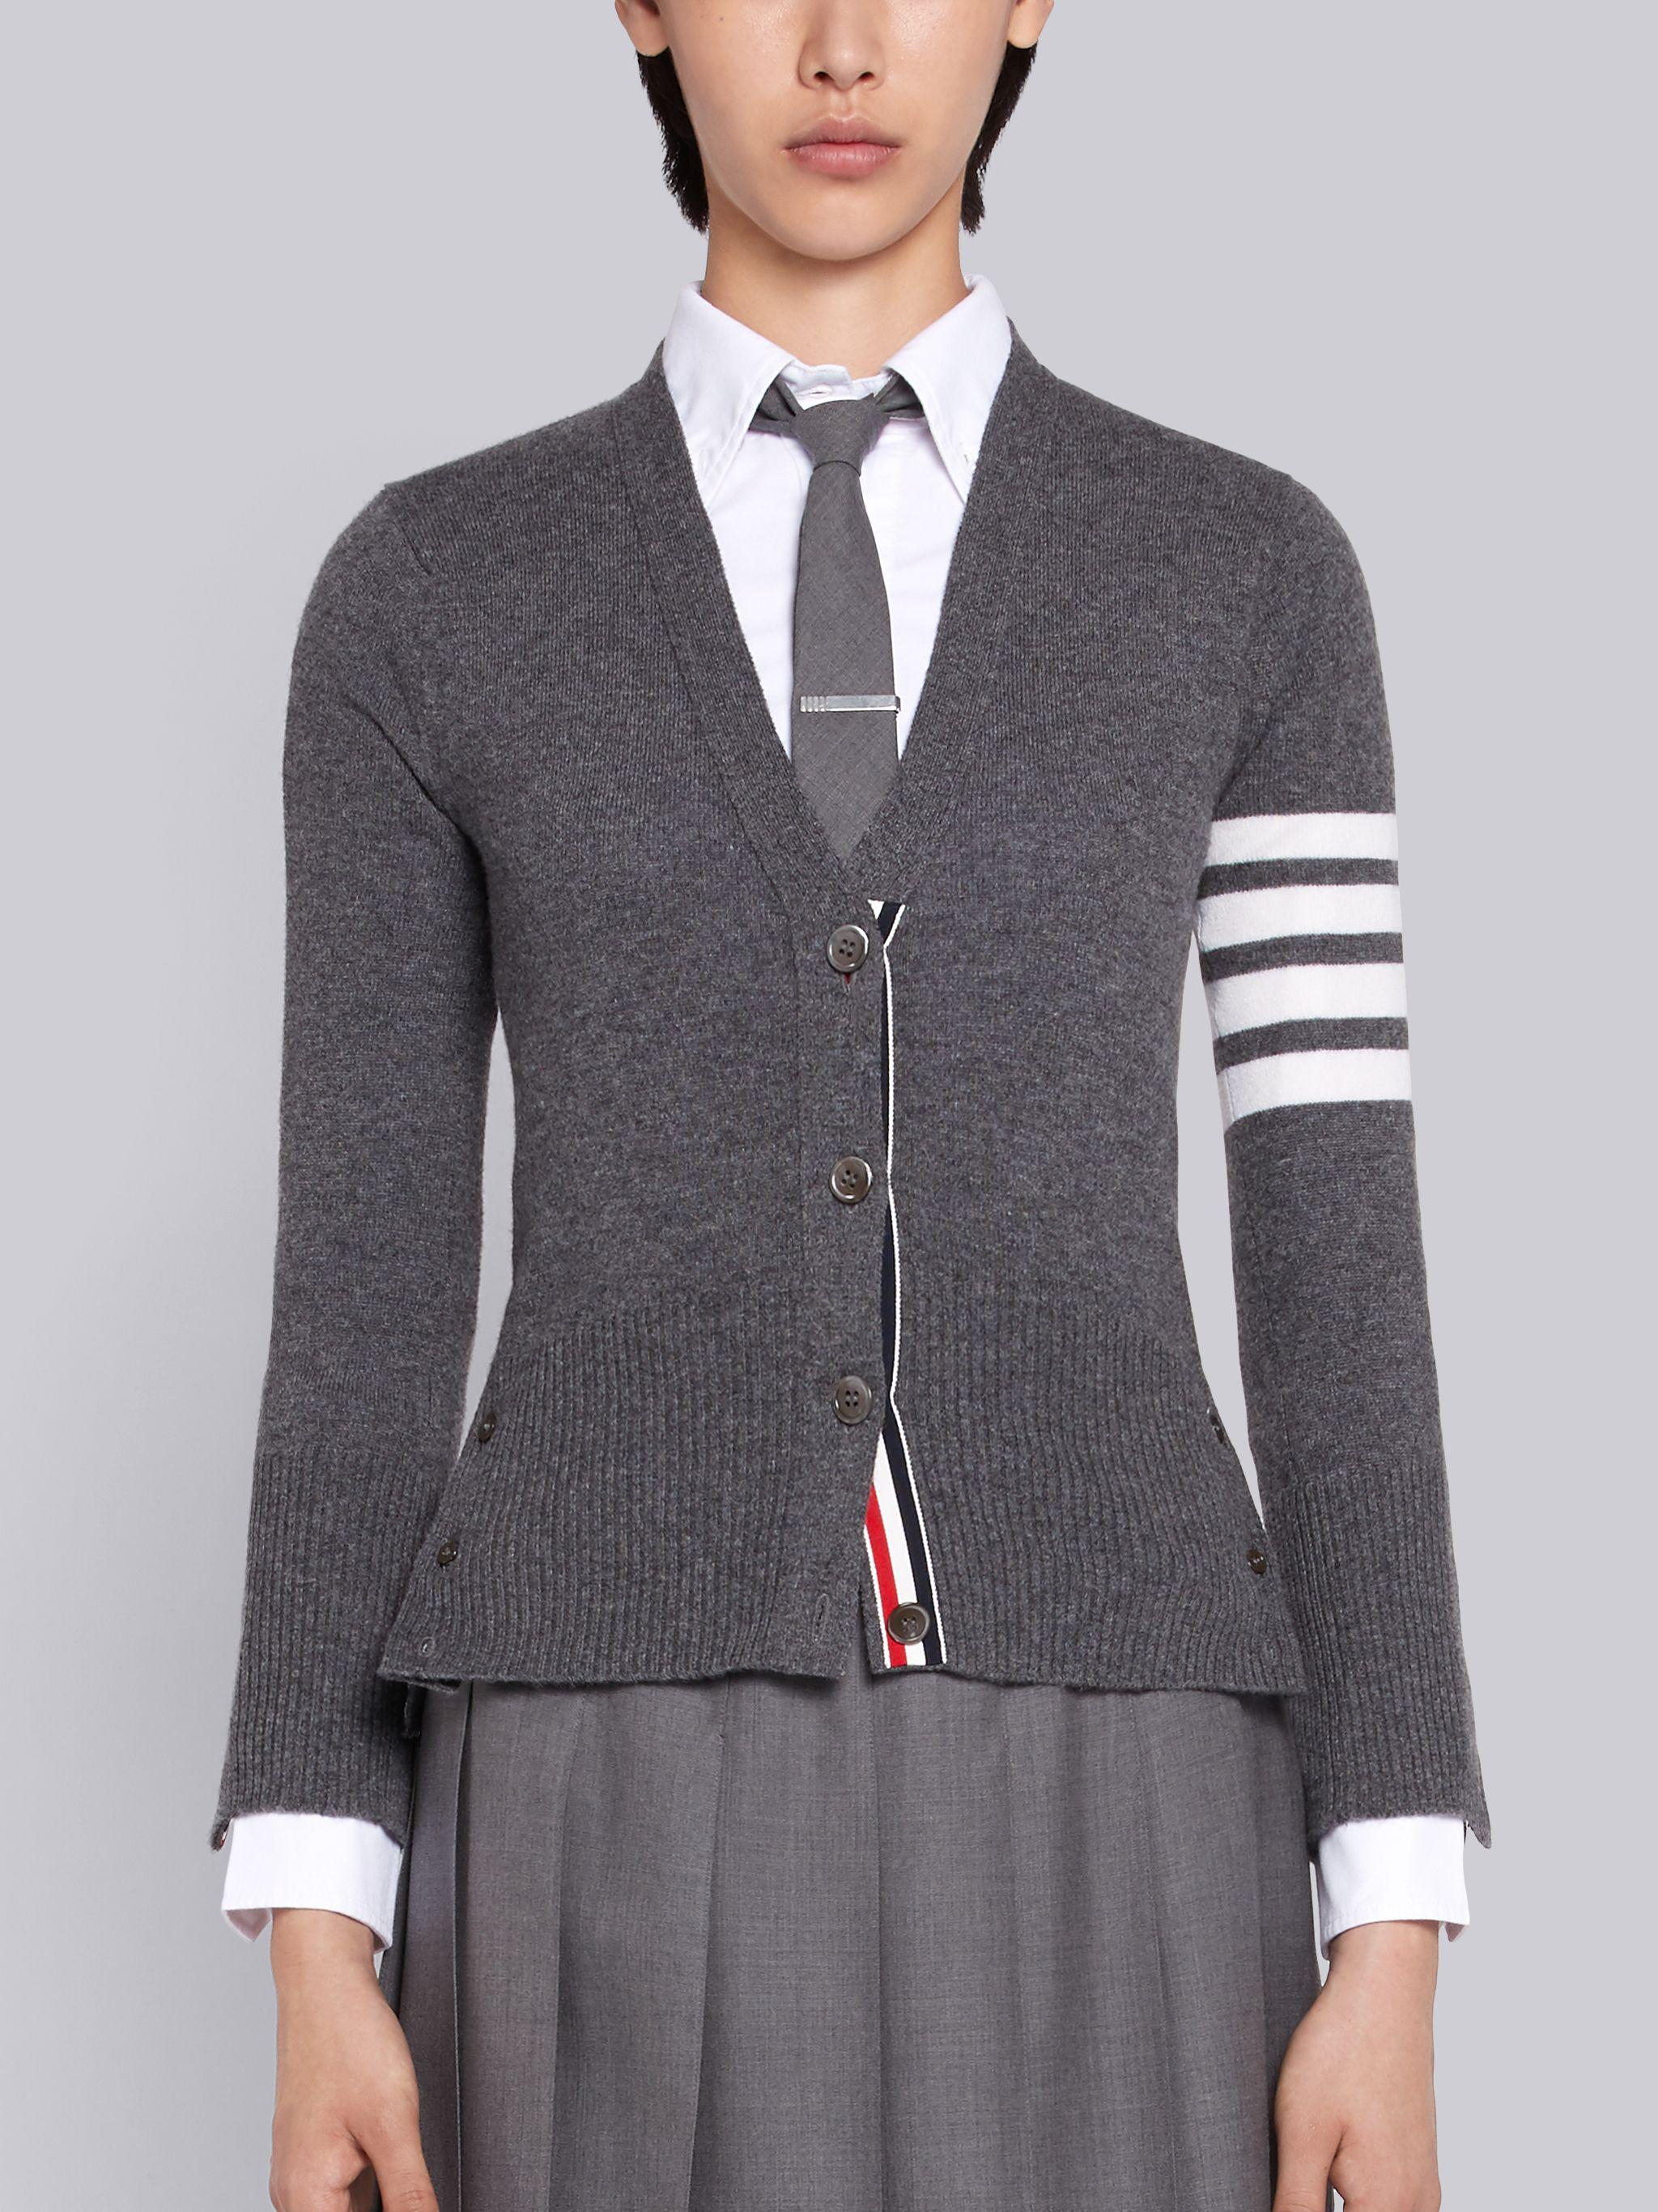 Classic V-Neck Cardigan In Cashmere With White 4-Bar Sleeve Stripe